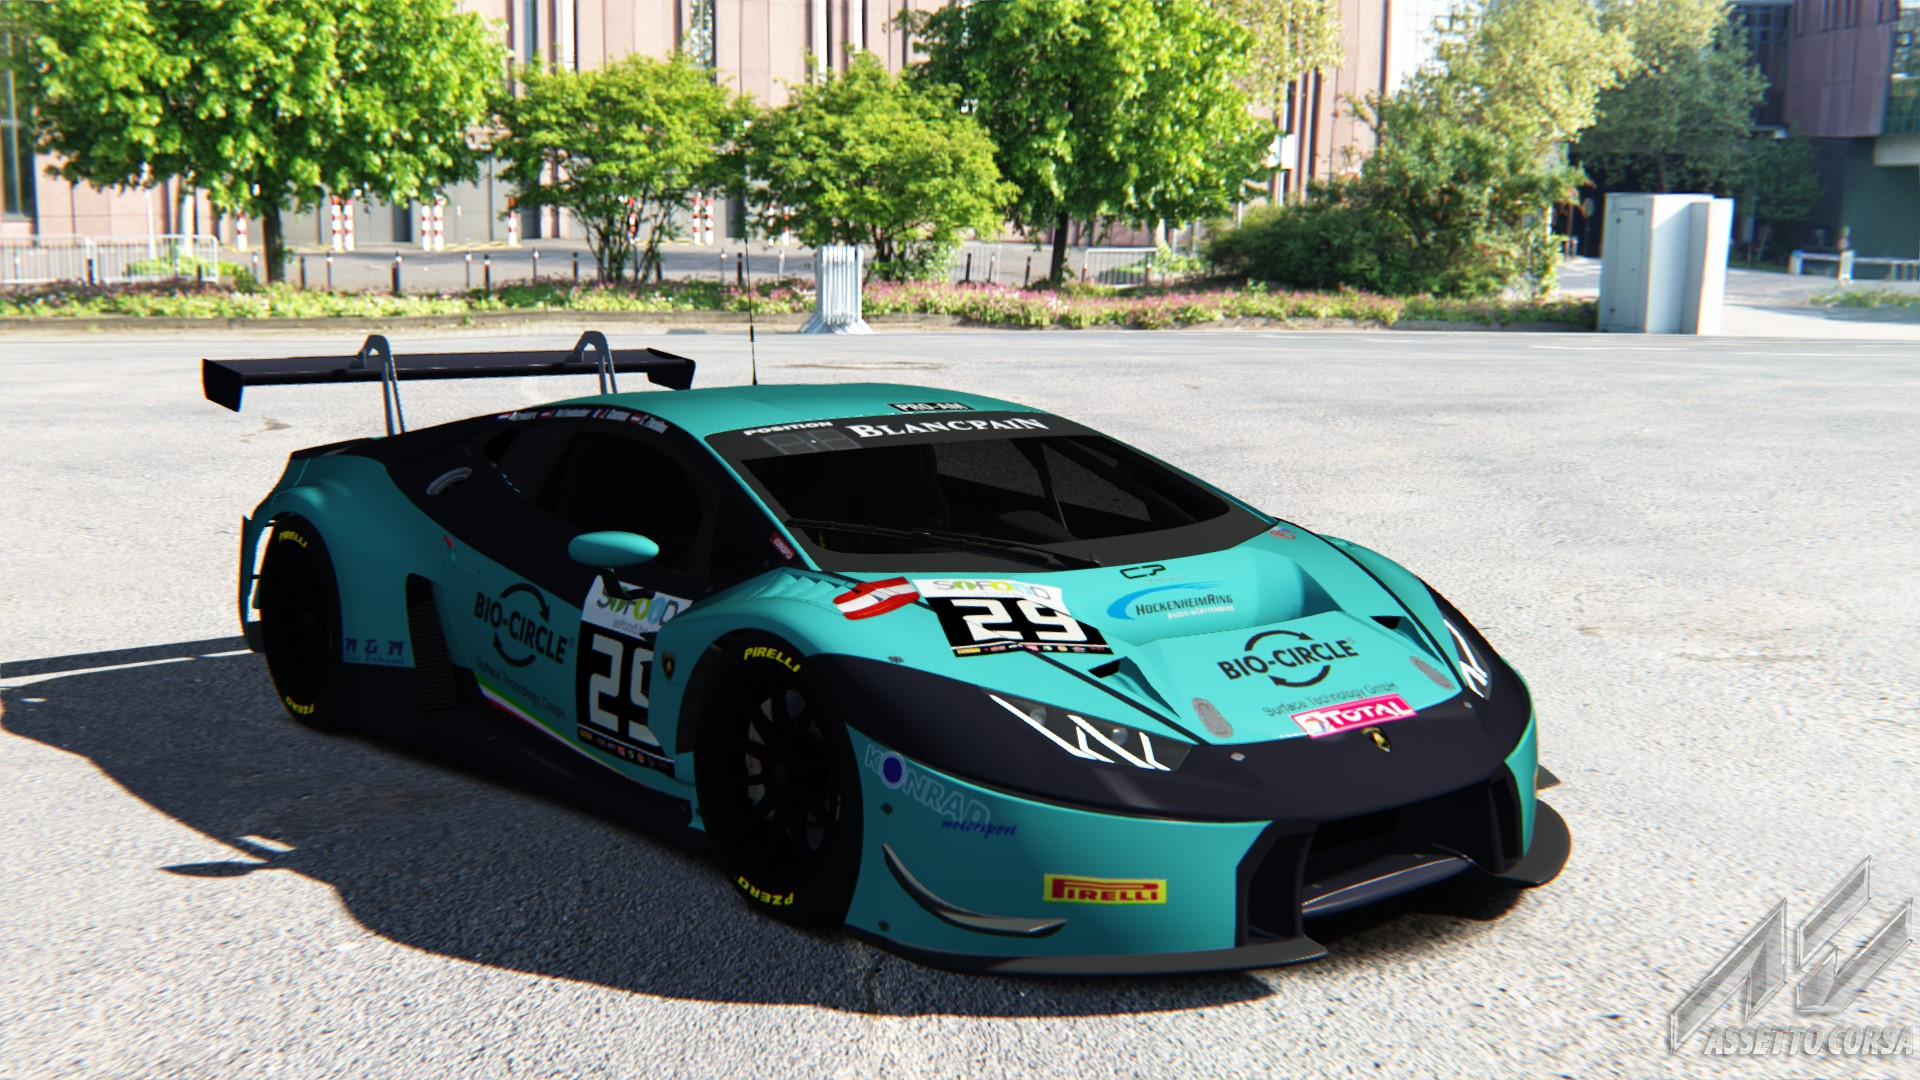 modern assetto corsa lamborghini huracan gt3 skin noisiestpassenger. Black Bedroom Furniture Sets. Home Design Ideas